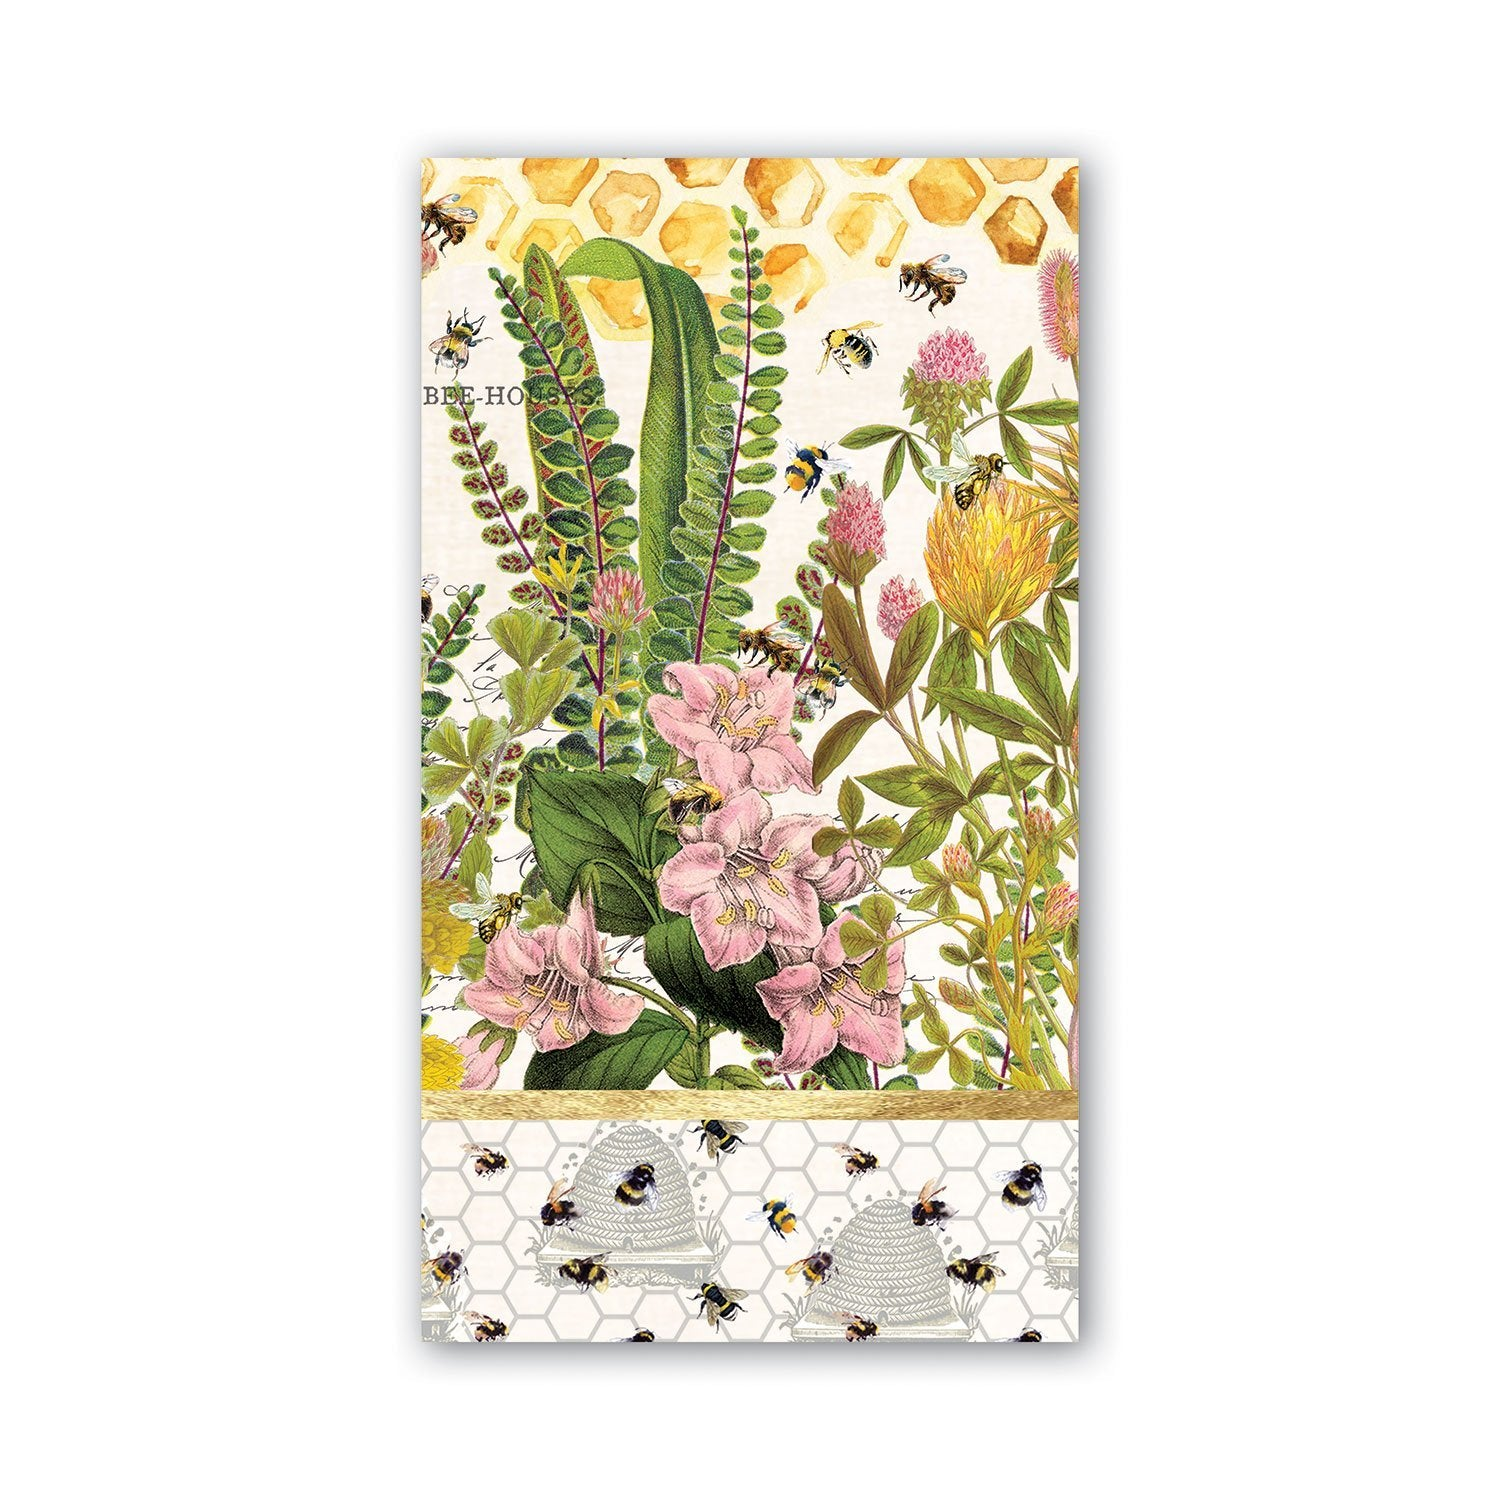 Honey Bees and Clover Napkins